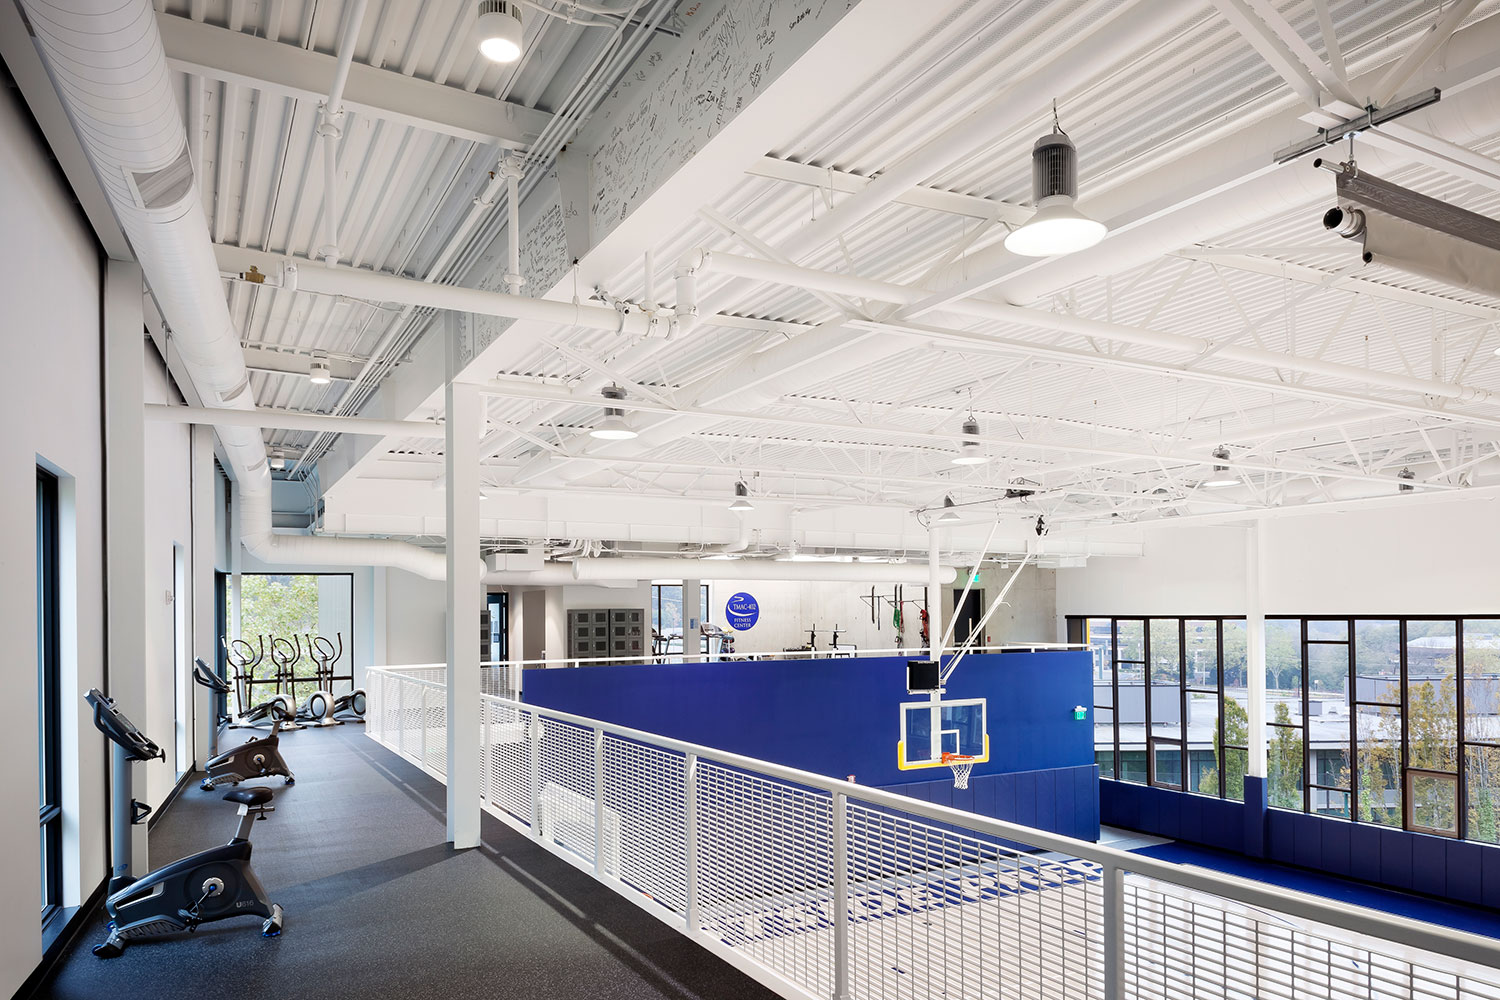 Gymnasium and basketball court interior